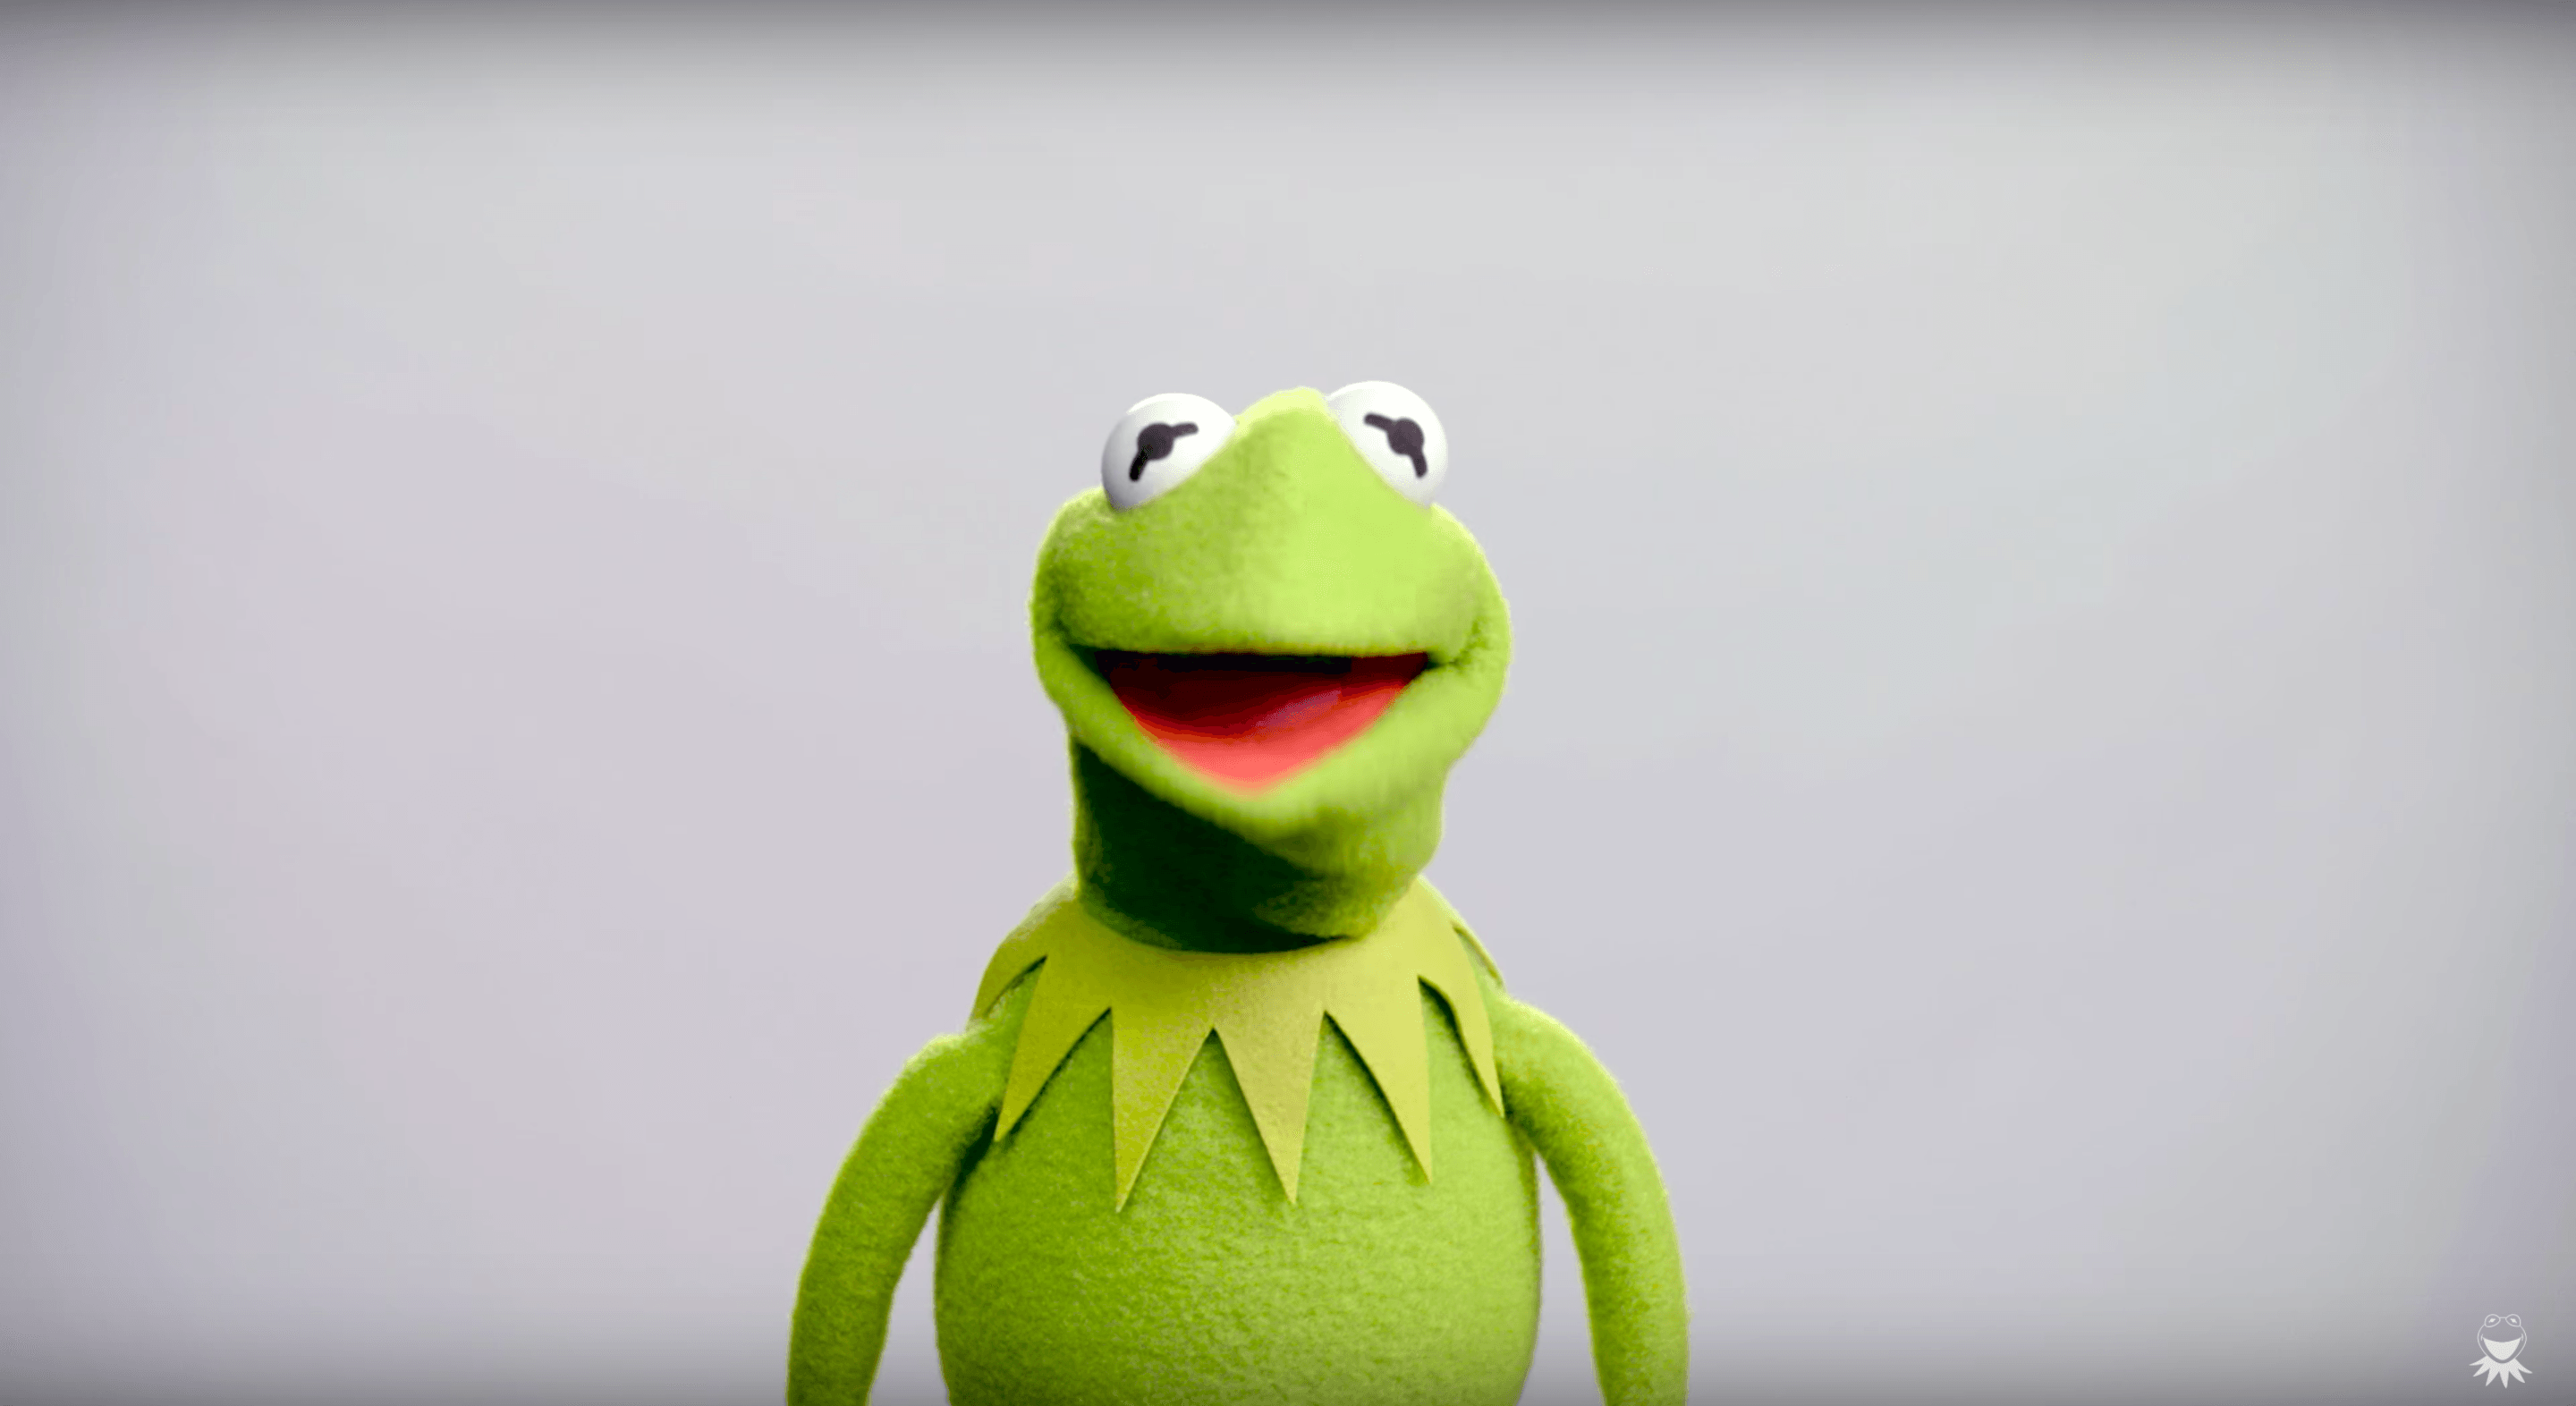 Kermit the Frog Returns with New Voice